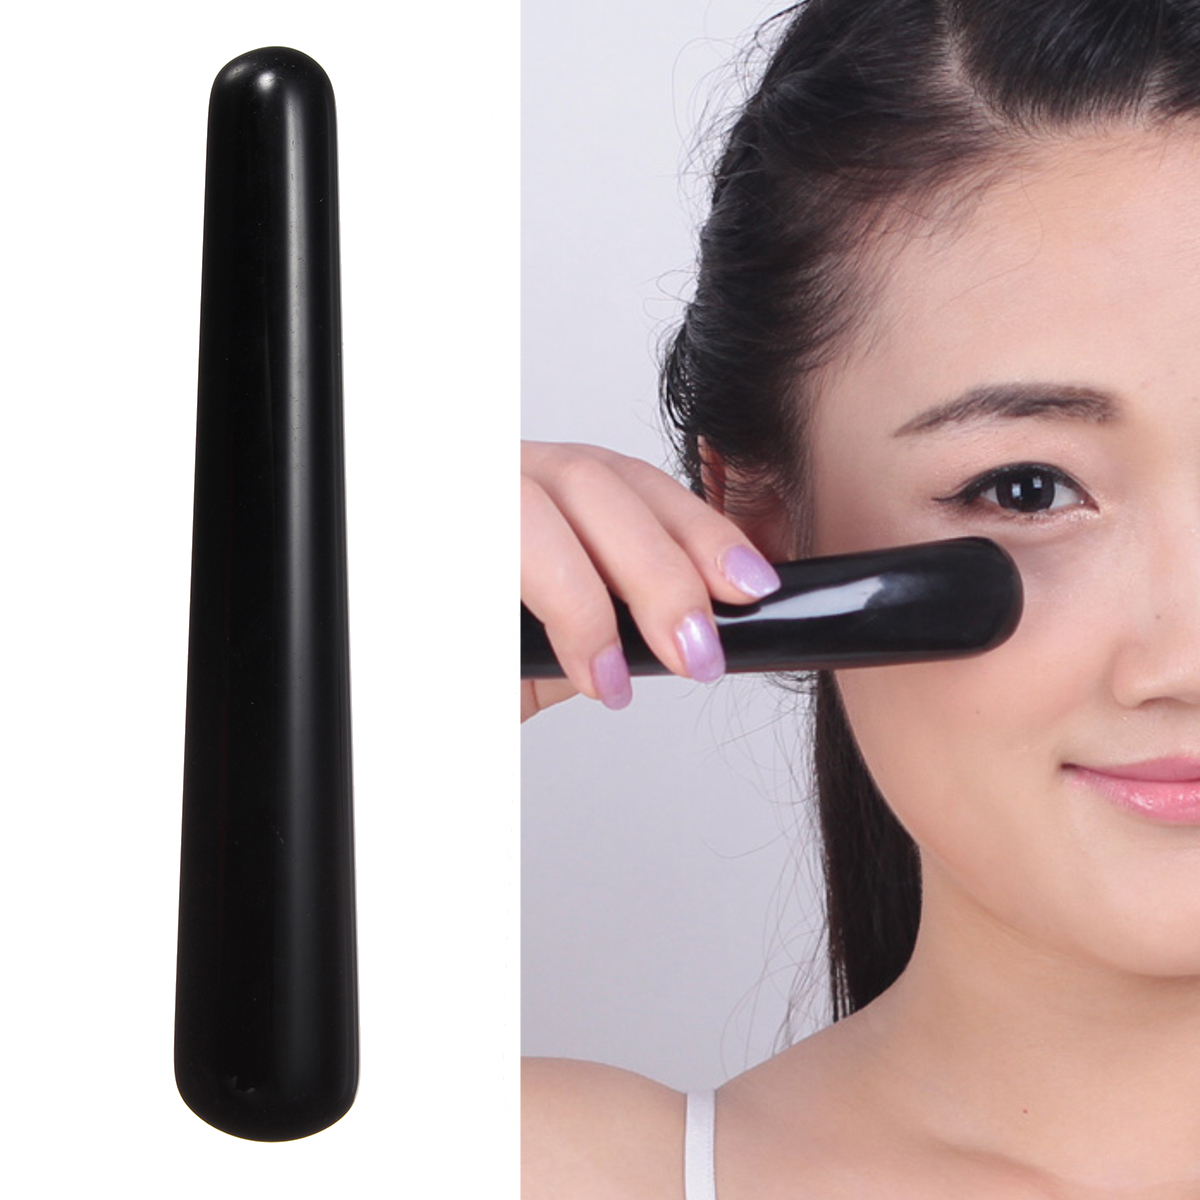 10cm Black Obsidian Yoni Massage Wand  Face Care Pleasure Stick For Women Body Massage Kegel Exercise Hearth Care